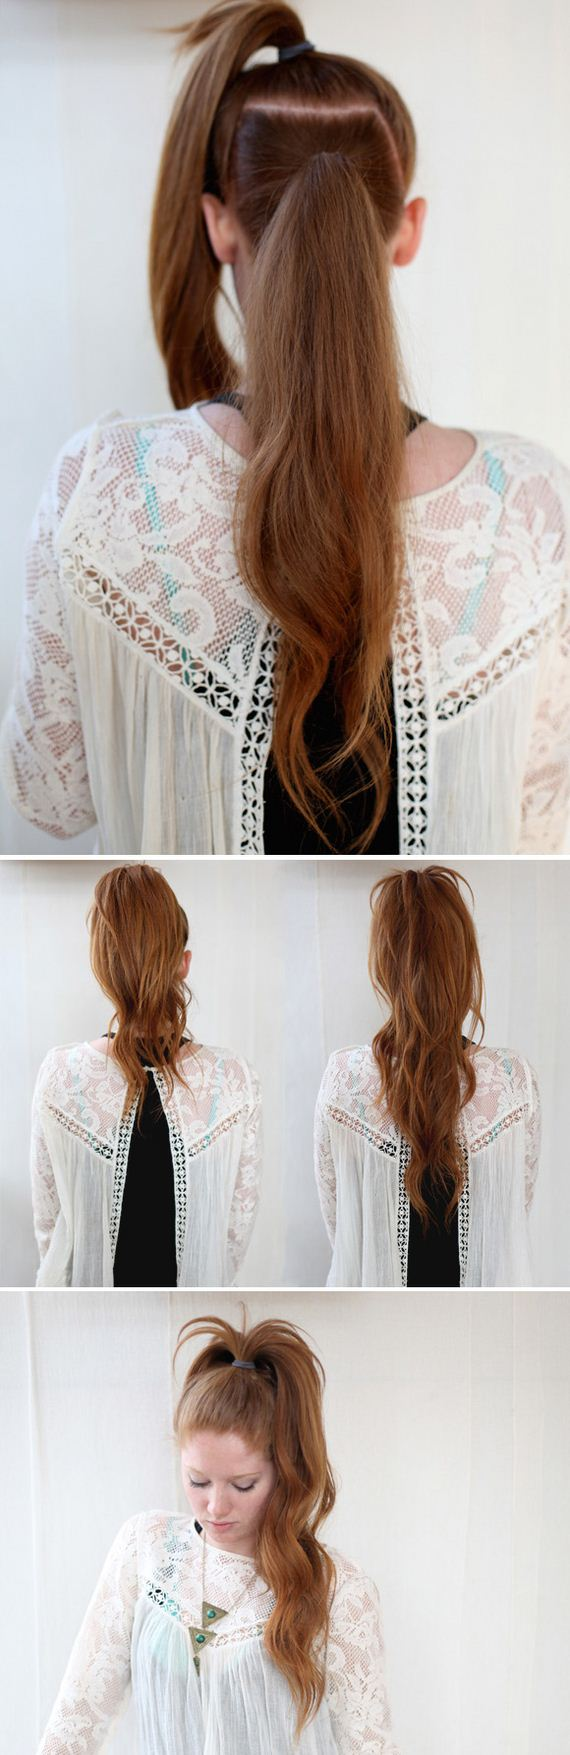 09-Five-Minute-Hairstyles